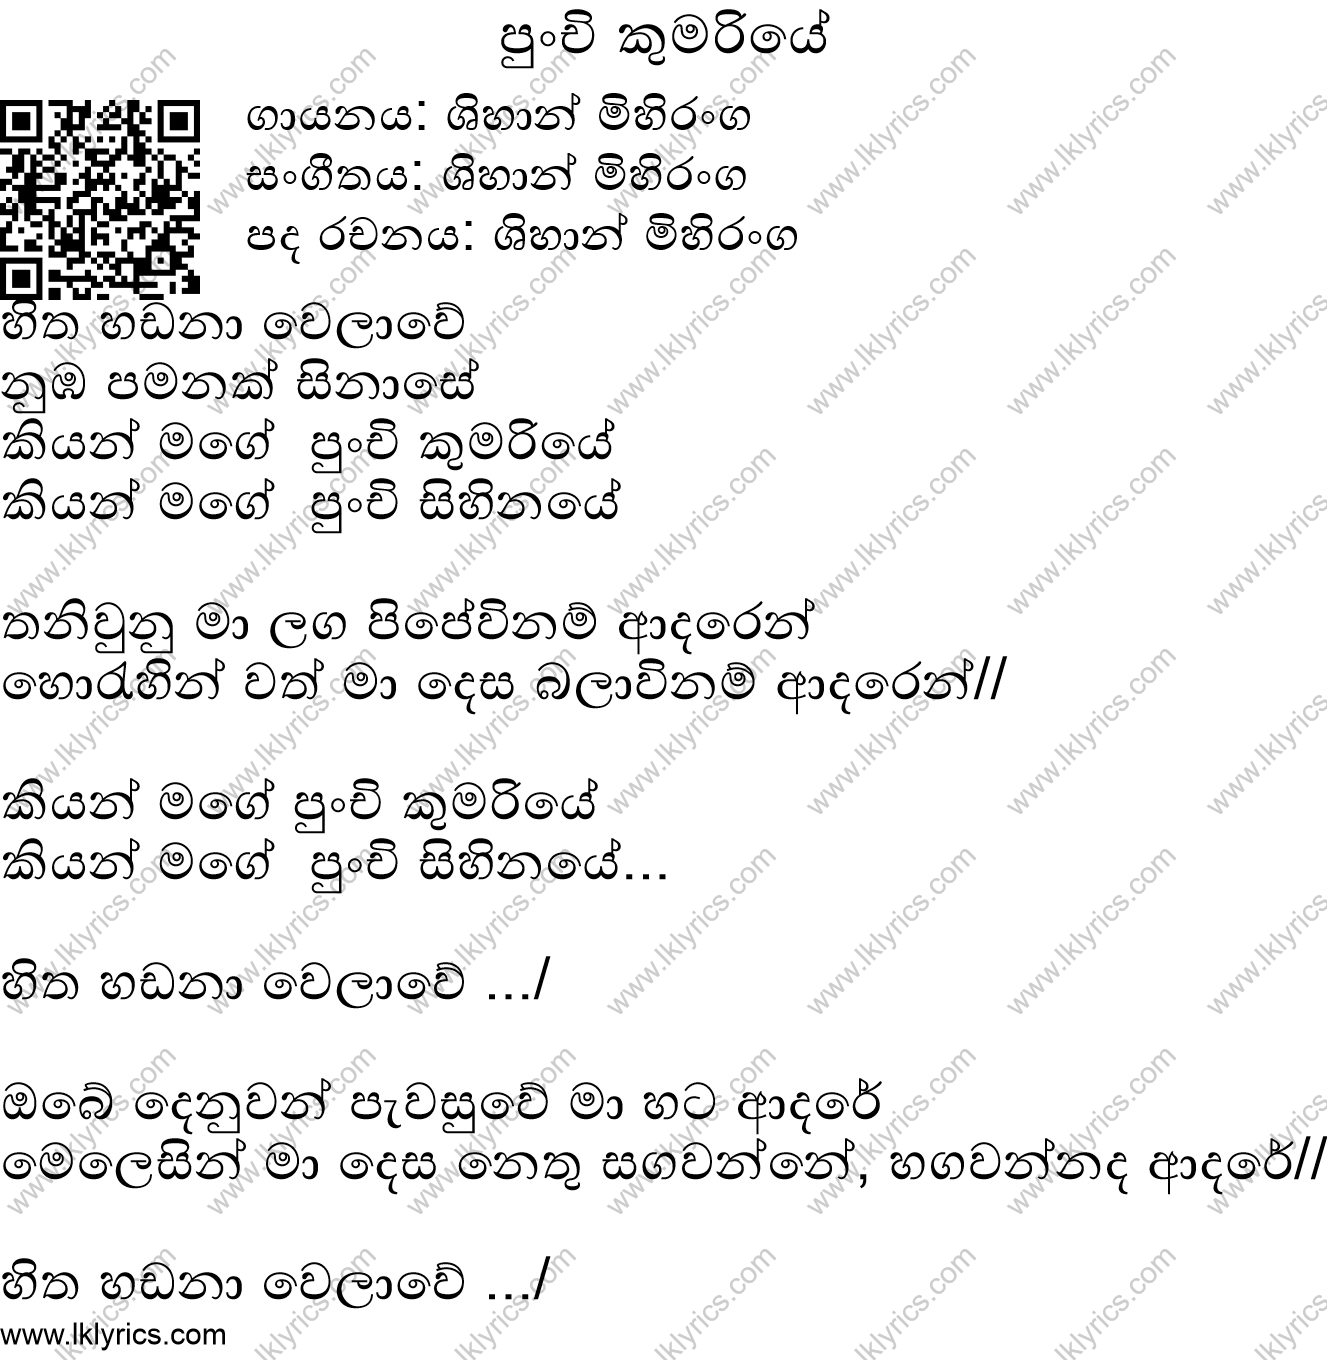 Punchi Kumariye Chords And Lyrics Chordlanka Com 27 More From Shihan Mihiranga Largest Sinhala Guitar Chords And Lyrics Collection